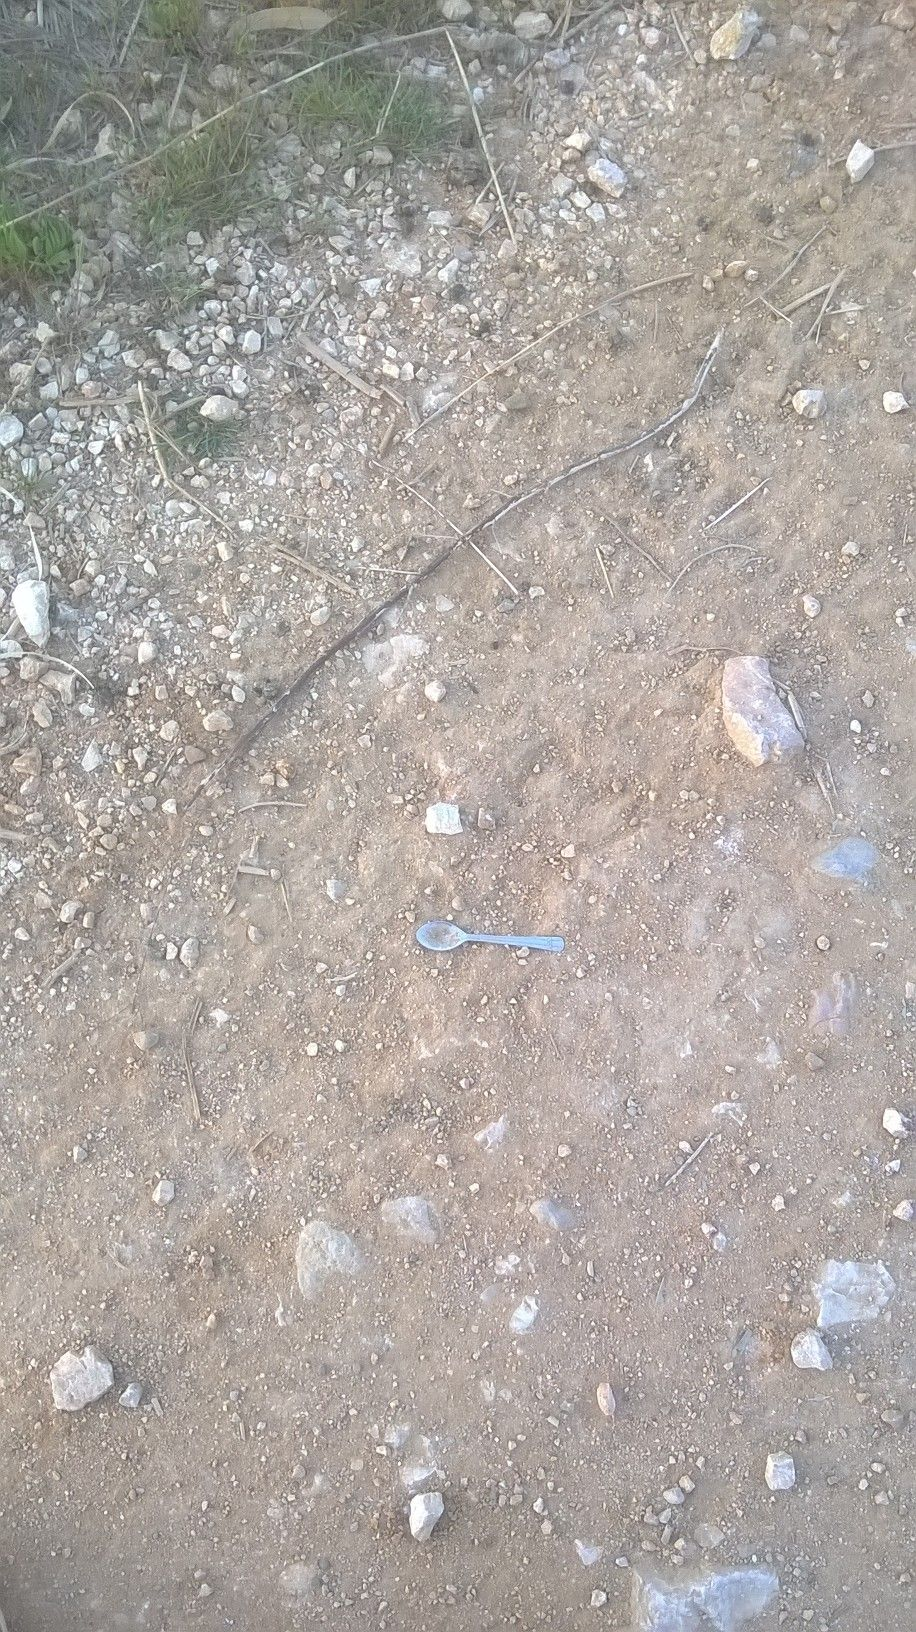 I know, I know. Its an old gag, but you can only play what's put in front of you. I came across a spoon in the road. Is it all that's left of a weary travelers rest stop? A sample of a buried horde worming its way to the surface?